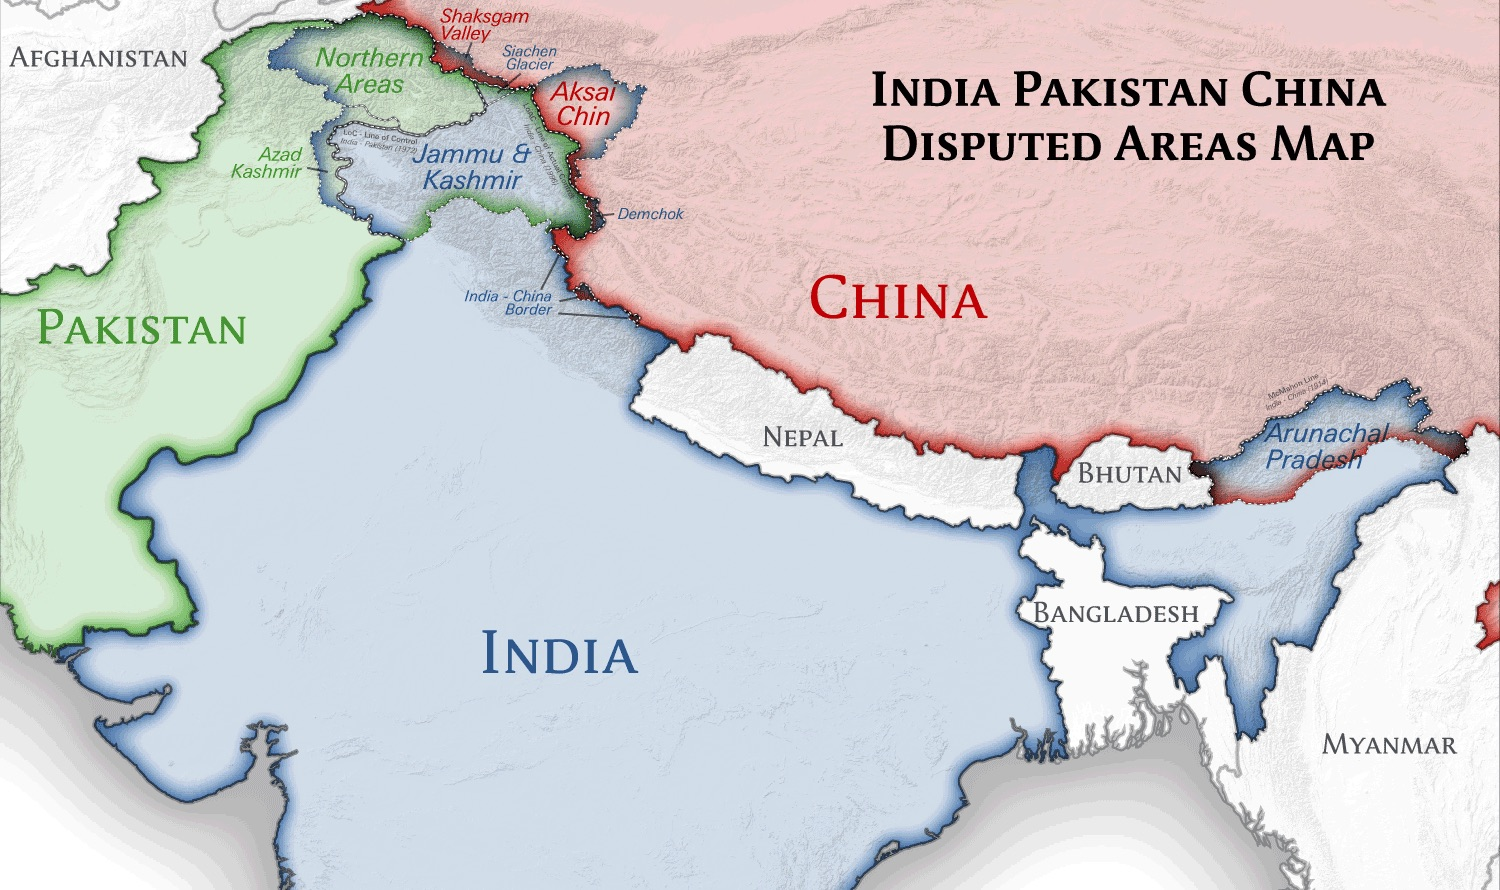 South Asia Forecast India And Pakistan Global Security Review